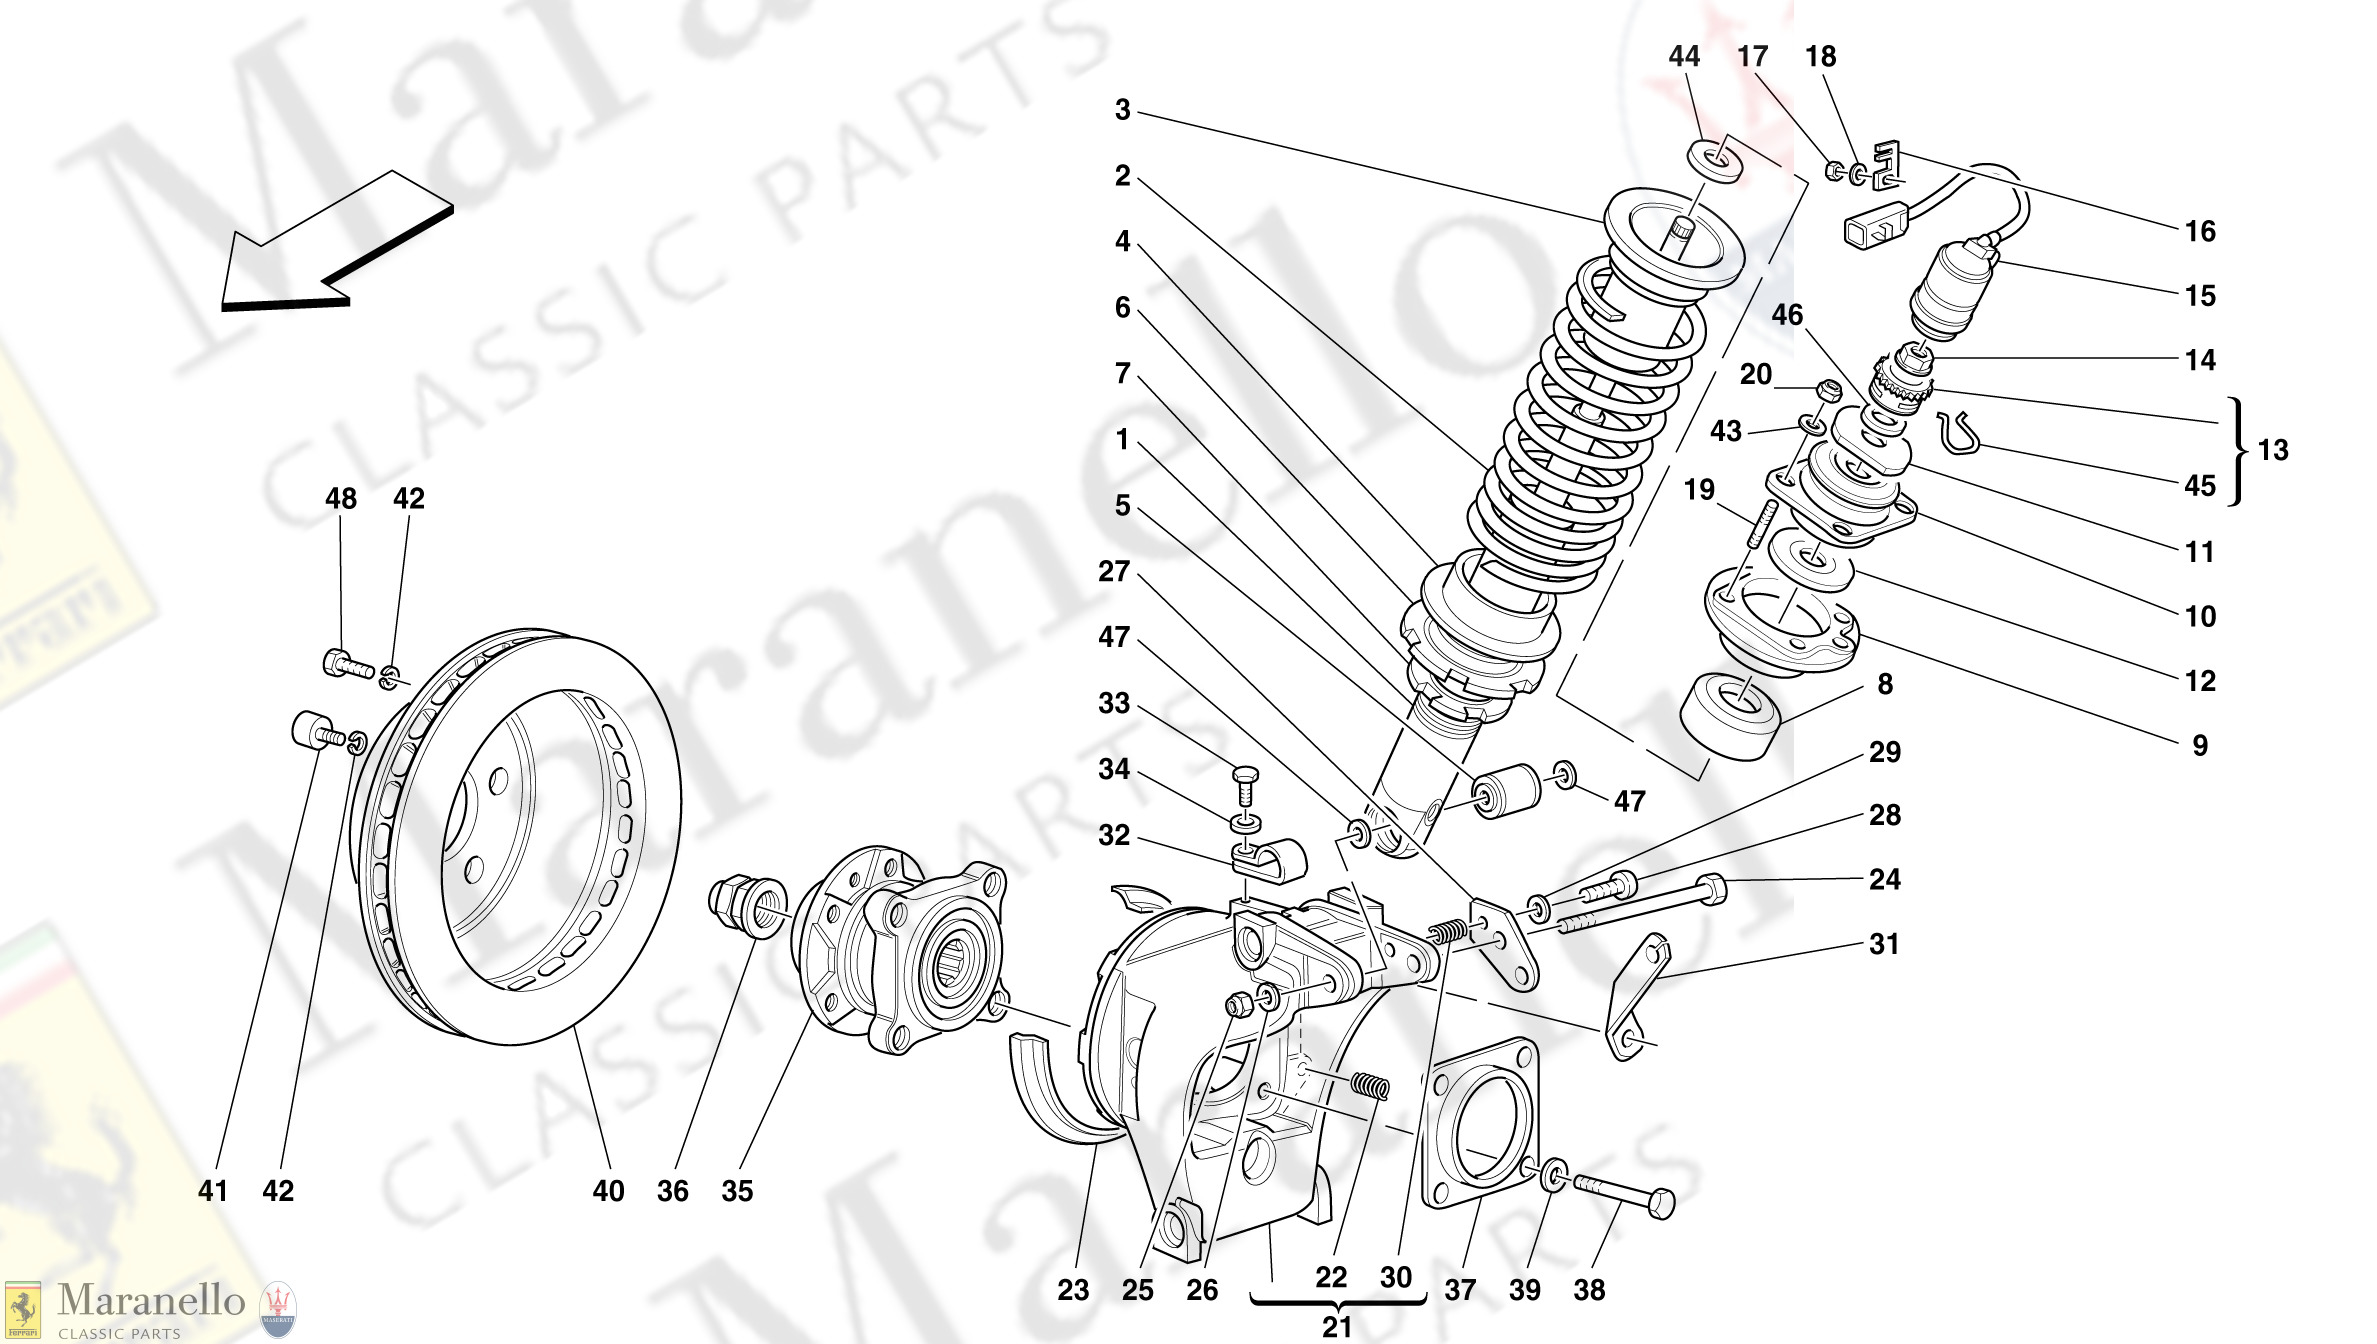 050 - Rear Suspension - Shock Absorber And Brake Disc